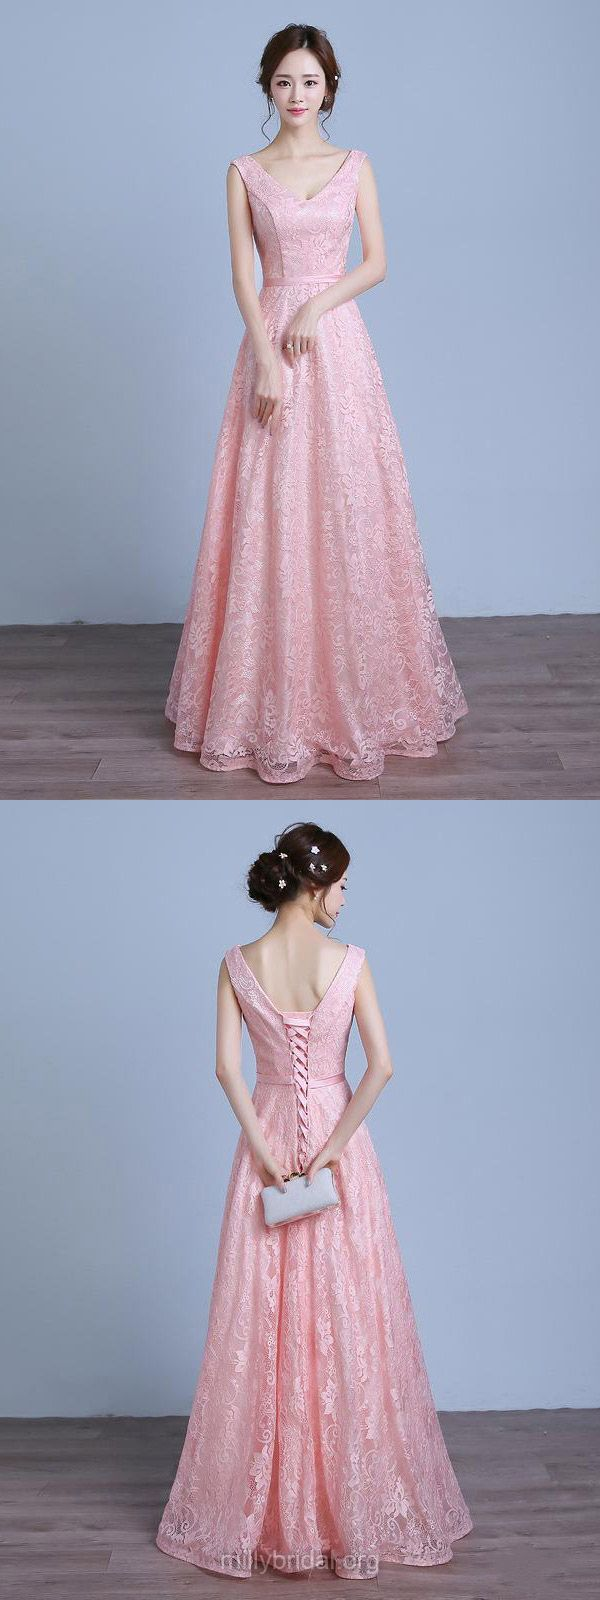 Long Prom Dresses Pink, Lace Prom Dresses For Teens Cheap, A-line ...